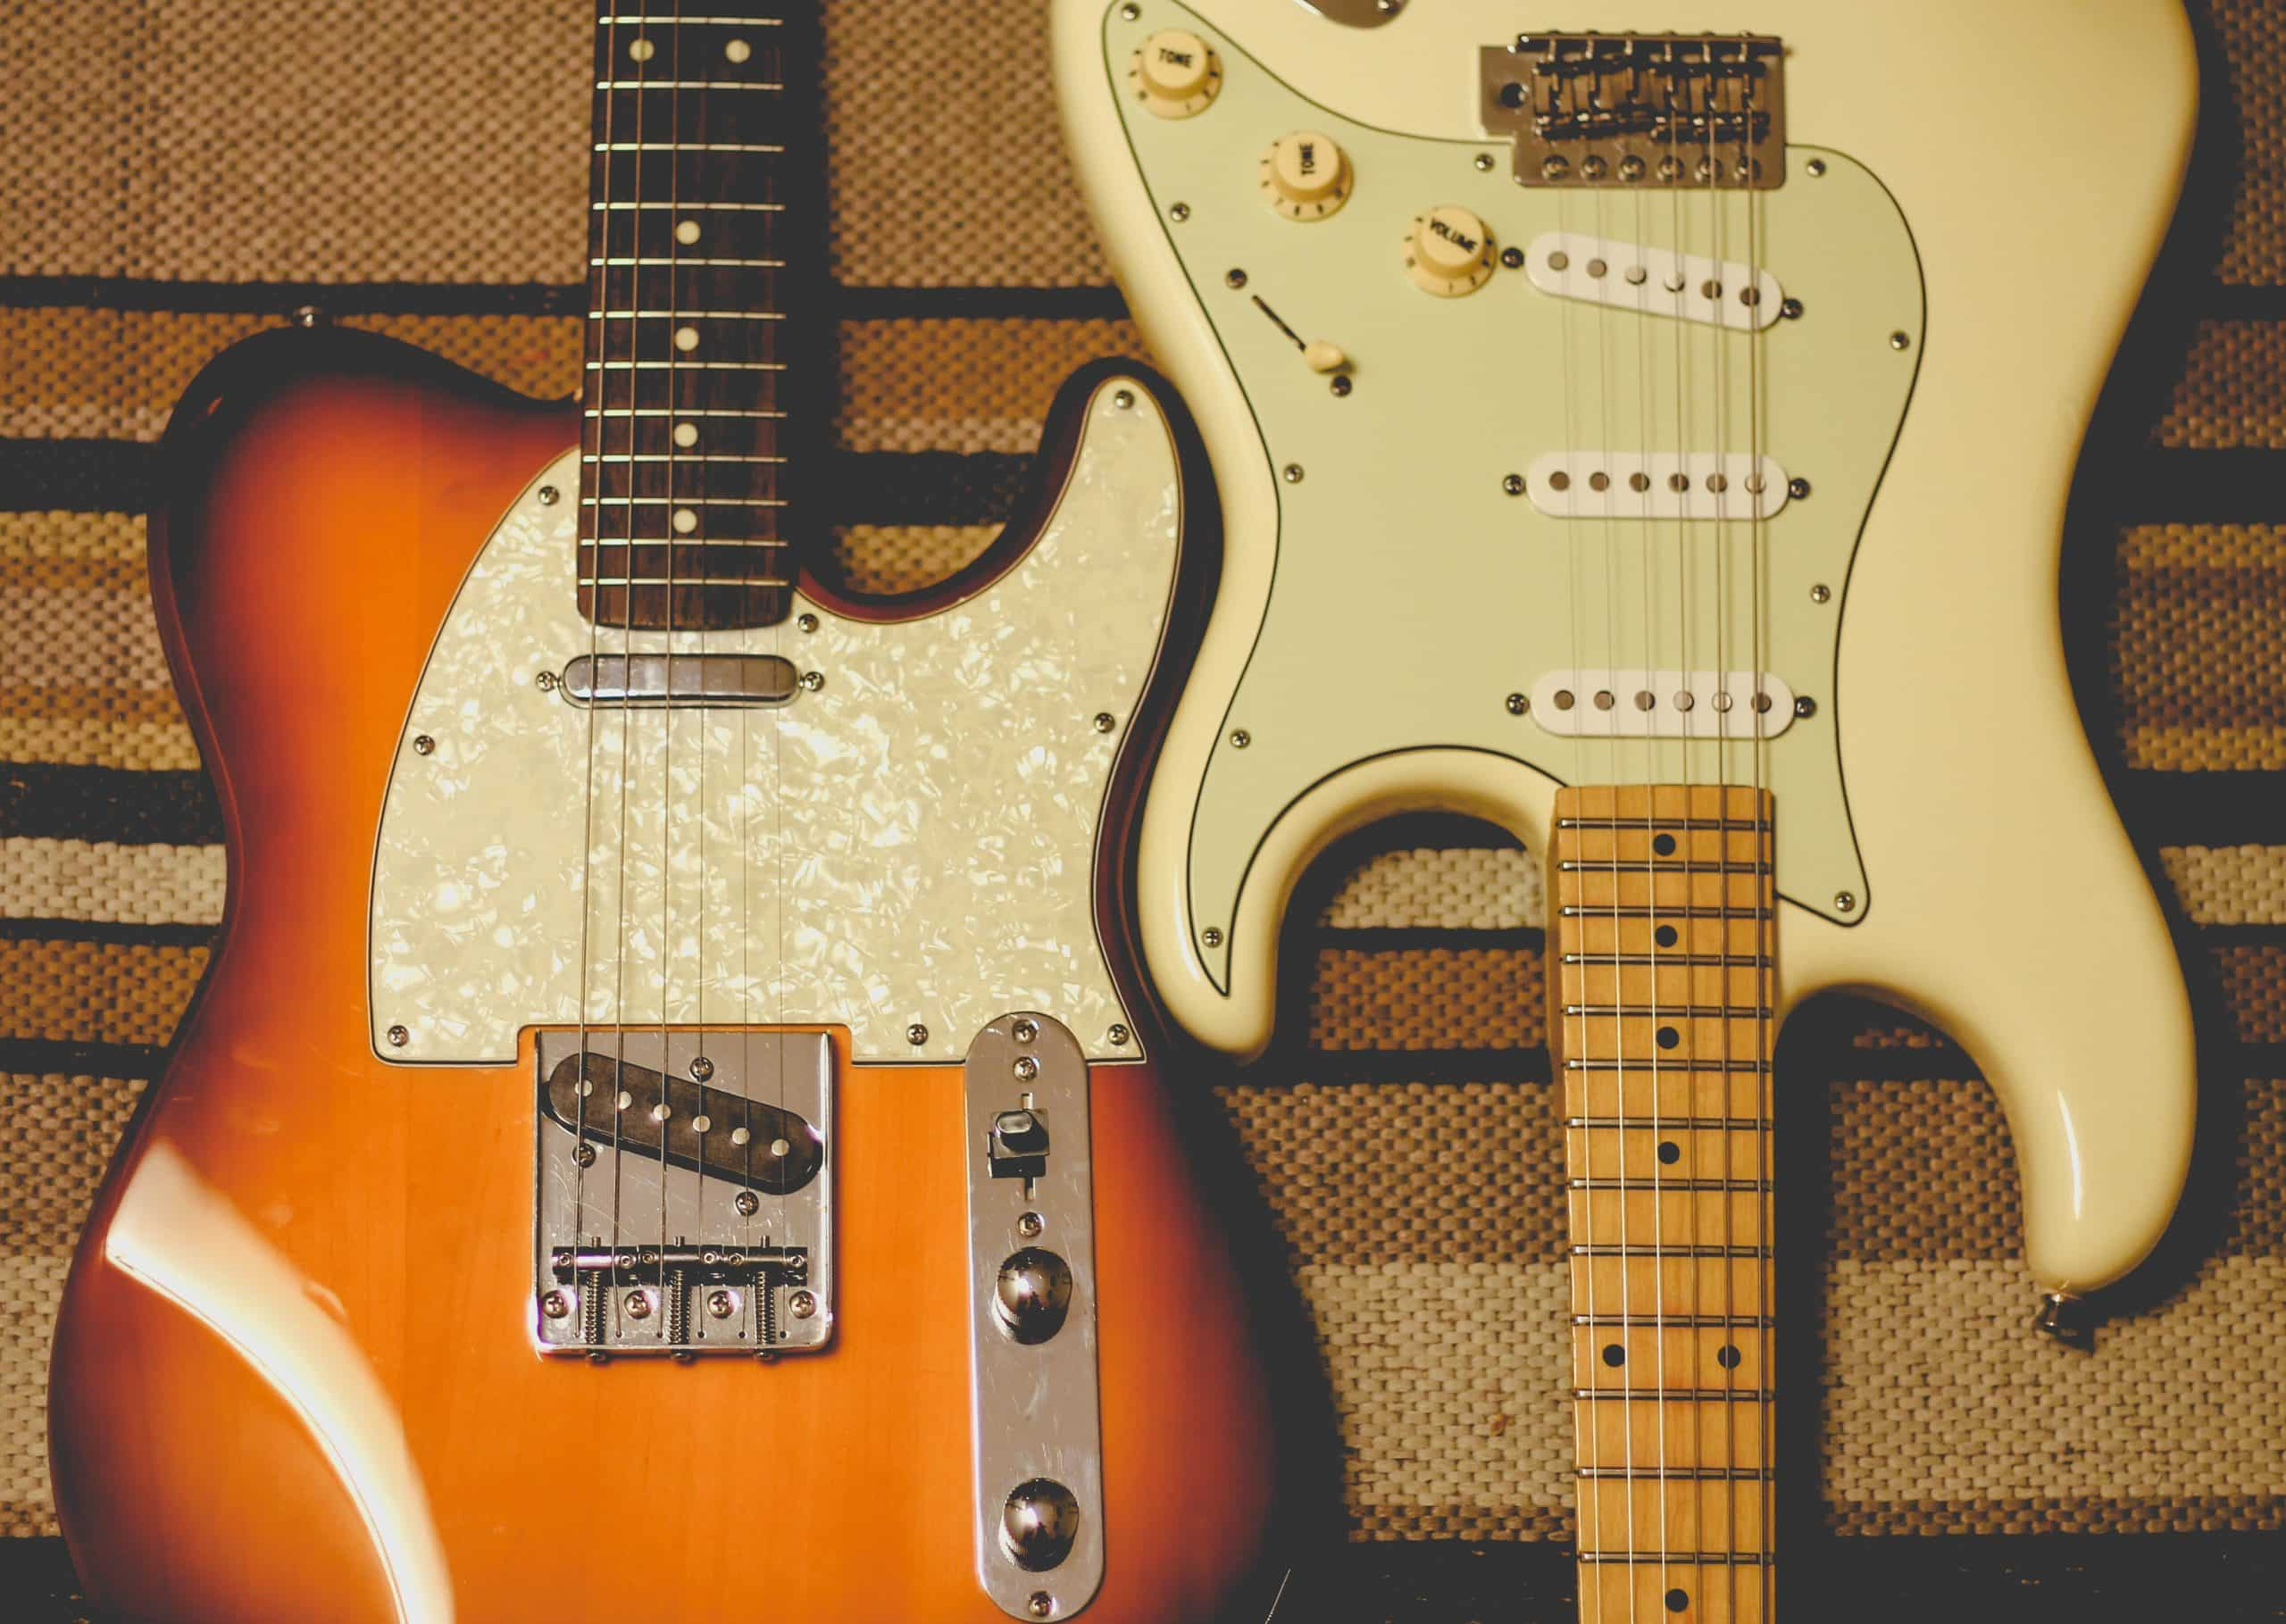 15 Alternative/Indie Songs for Beginner Guitar Players with Chords